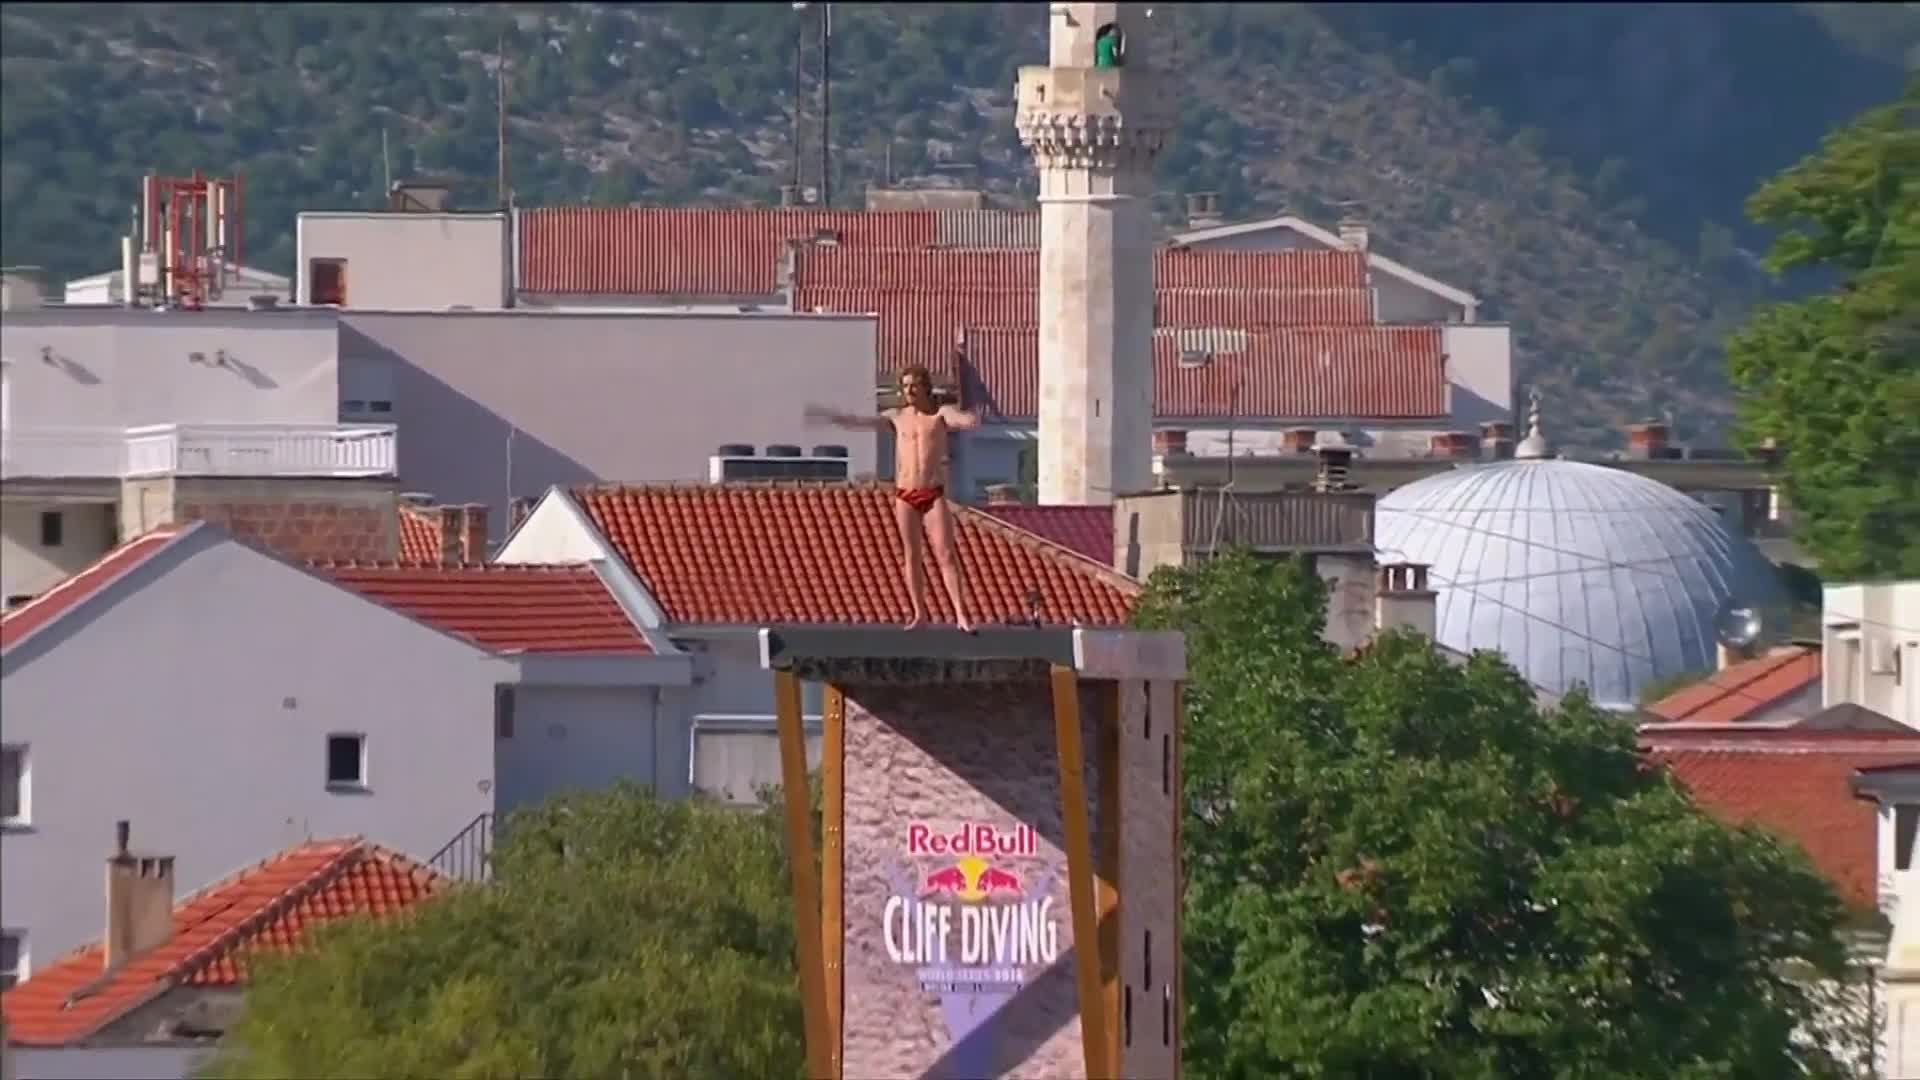 Wins for Navratil and Richard at Mostar Cliff Diving event